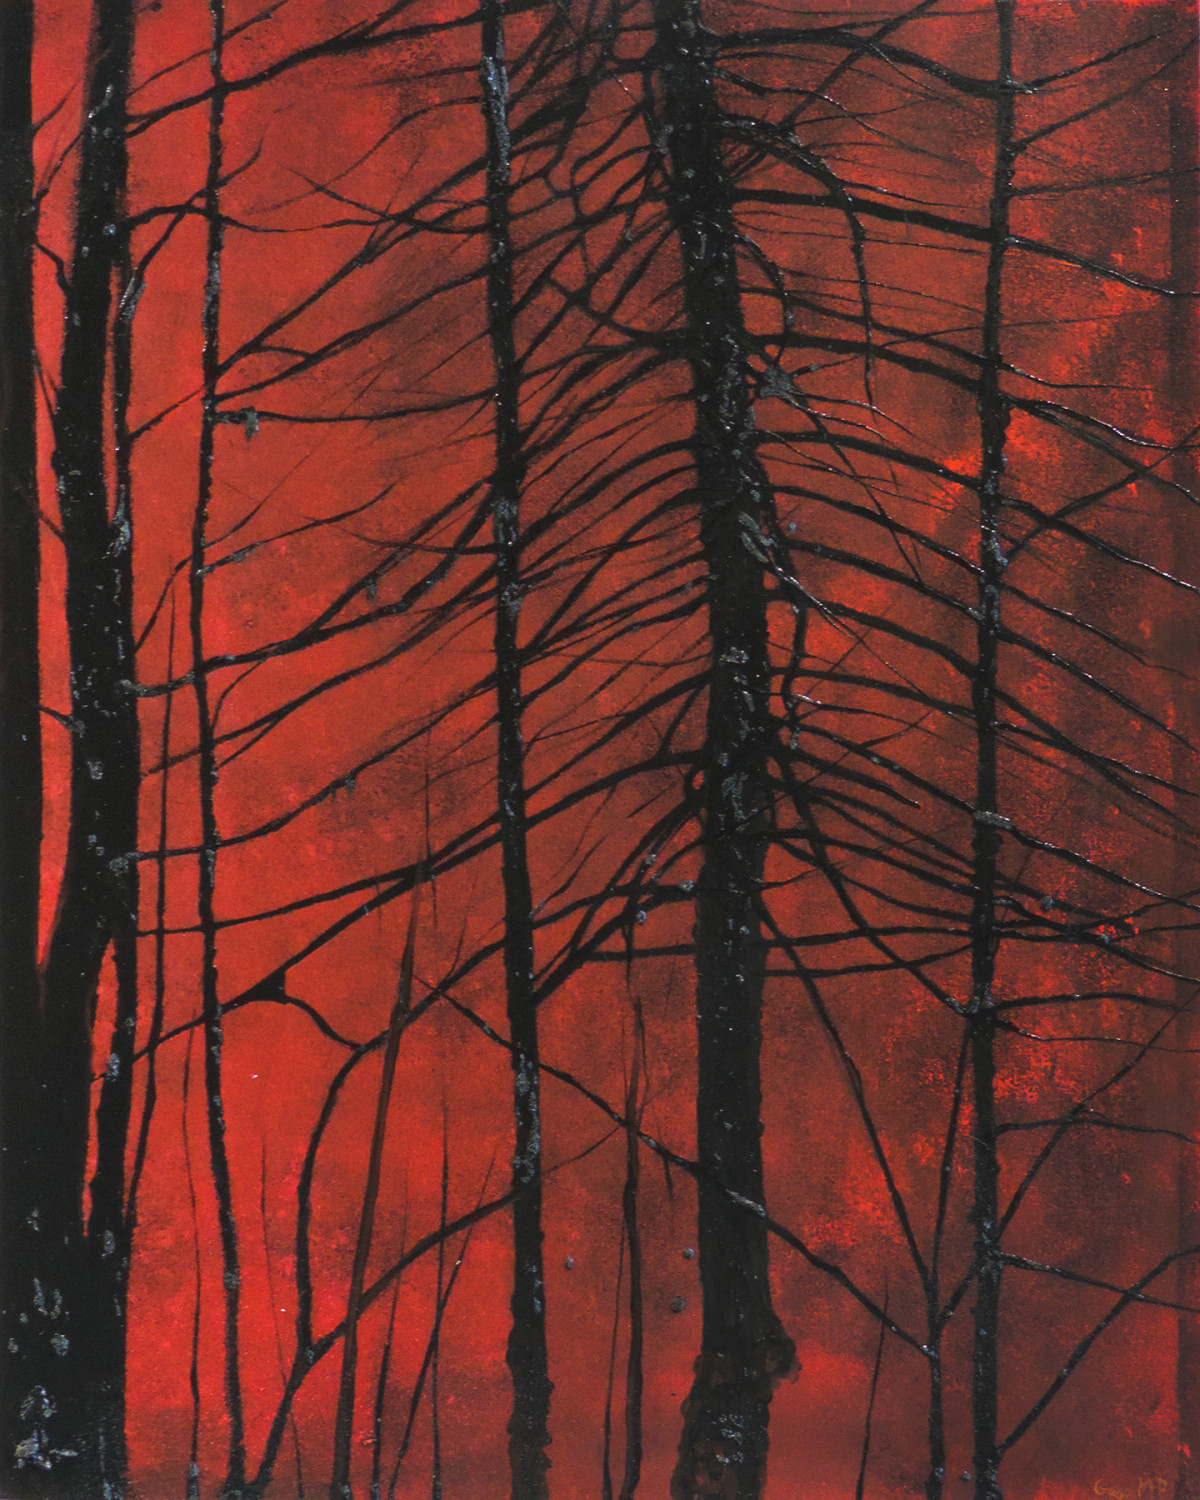 Lincoln Woods 16 - September - Oil on Canvas - 24 x 30